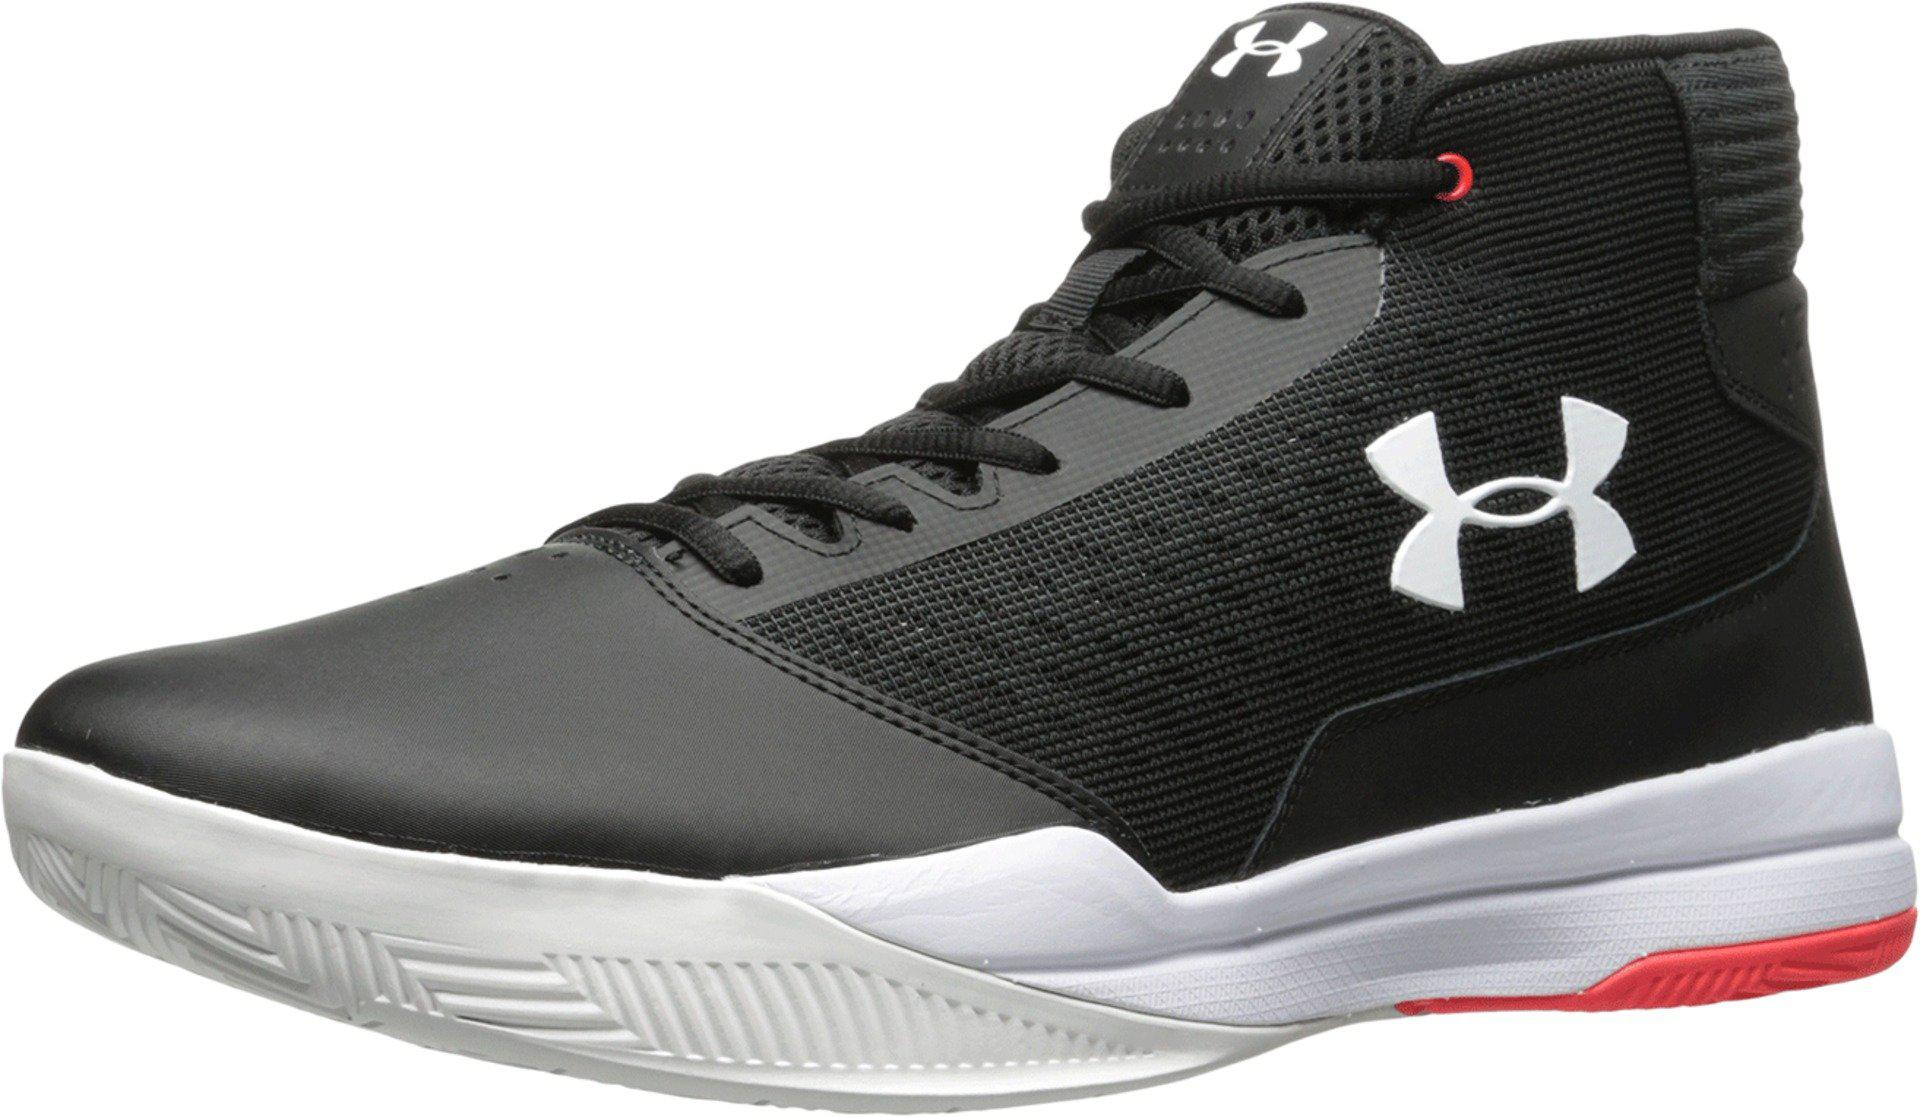 Under Armour Leather Ua Jet 2017 in